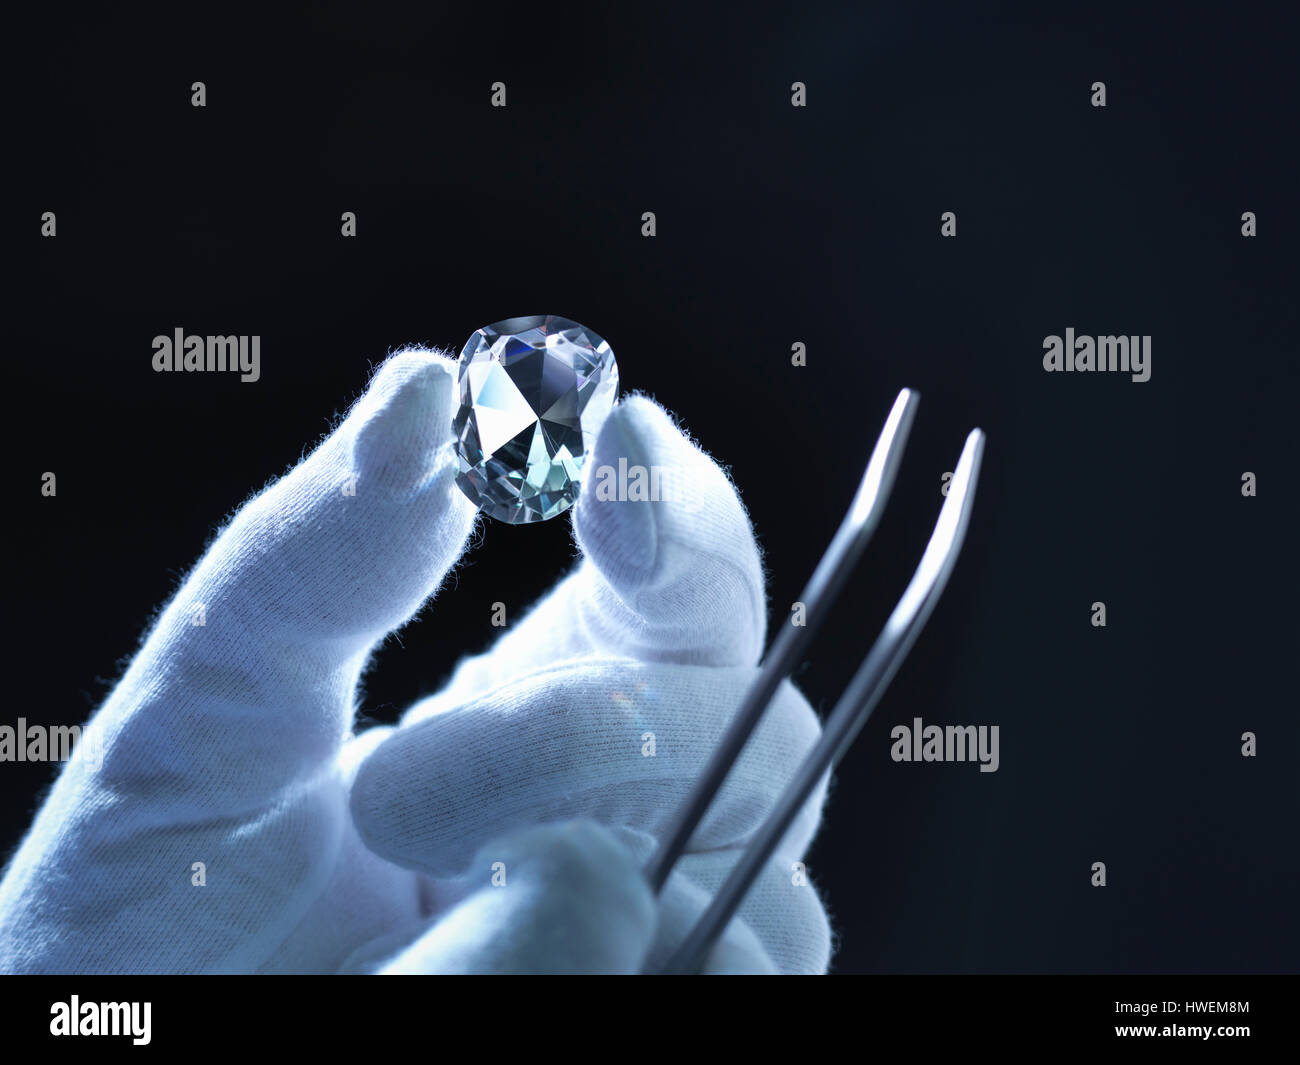 Jeweller inspecting replica diamonds with gloved hand - Stock Image